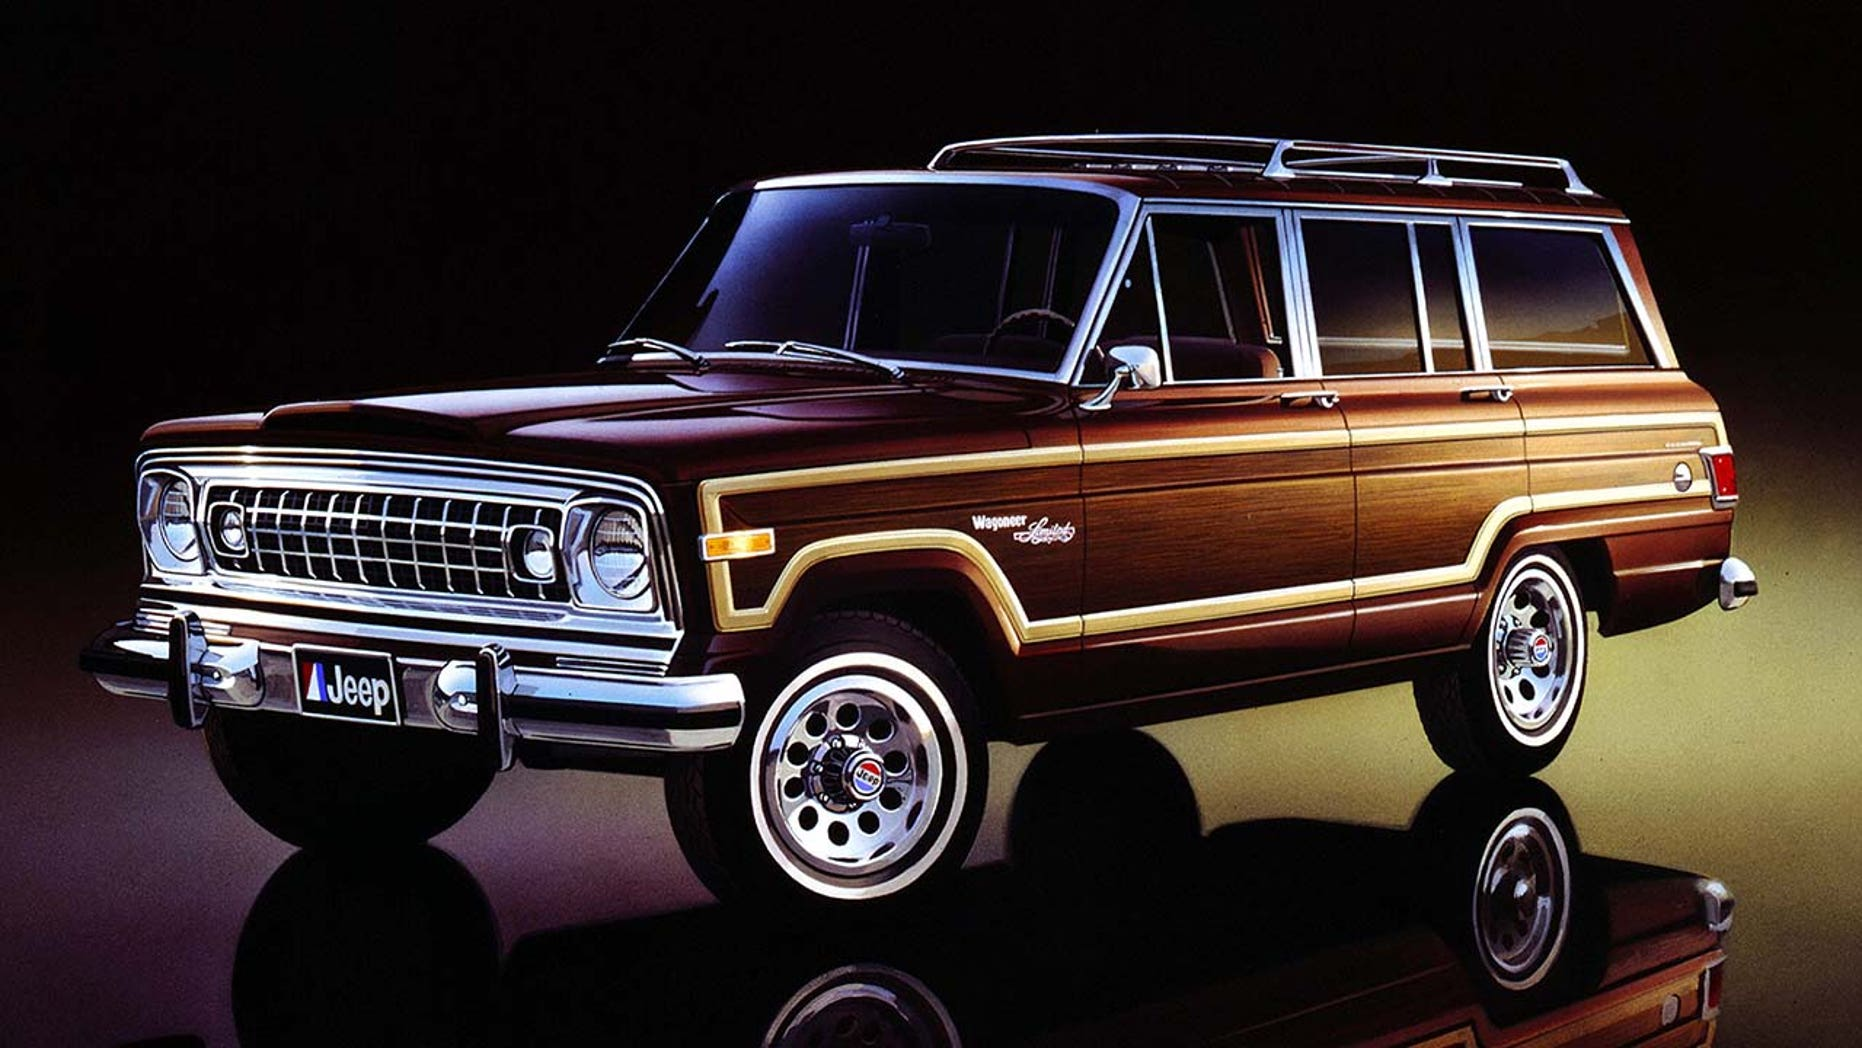 The Top 25 Collector Cars for 2019-Jeep Grand Wagoneer